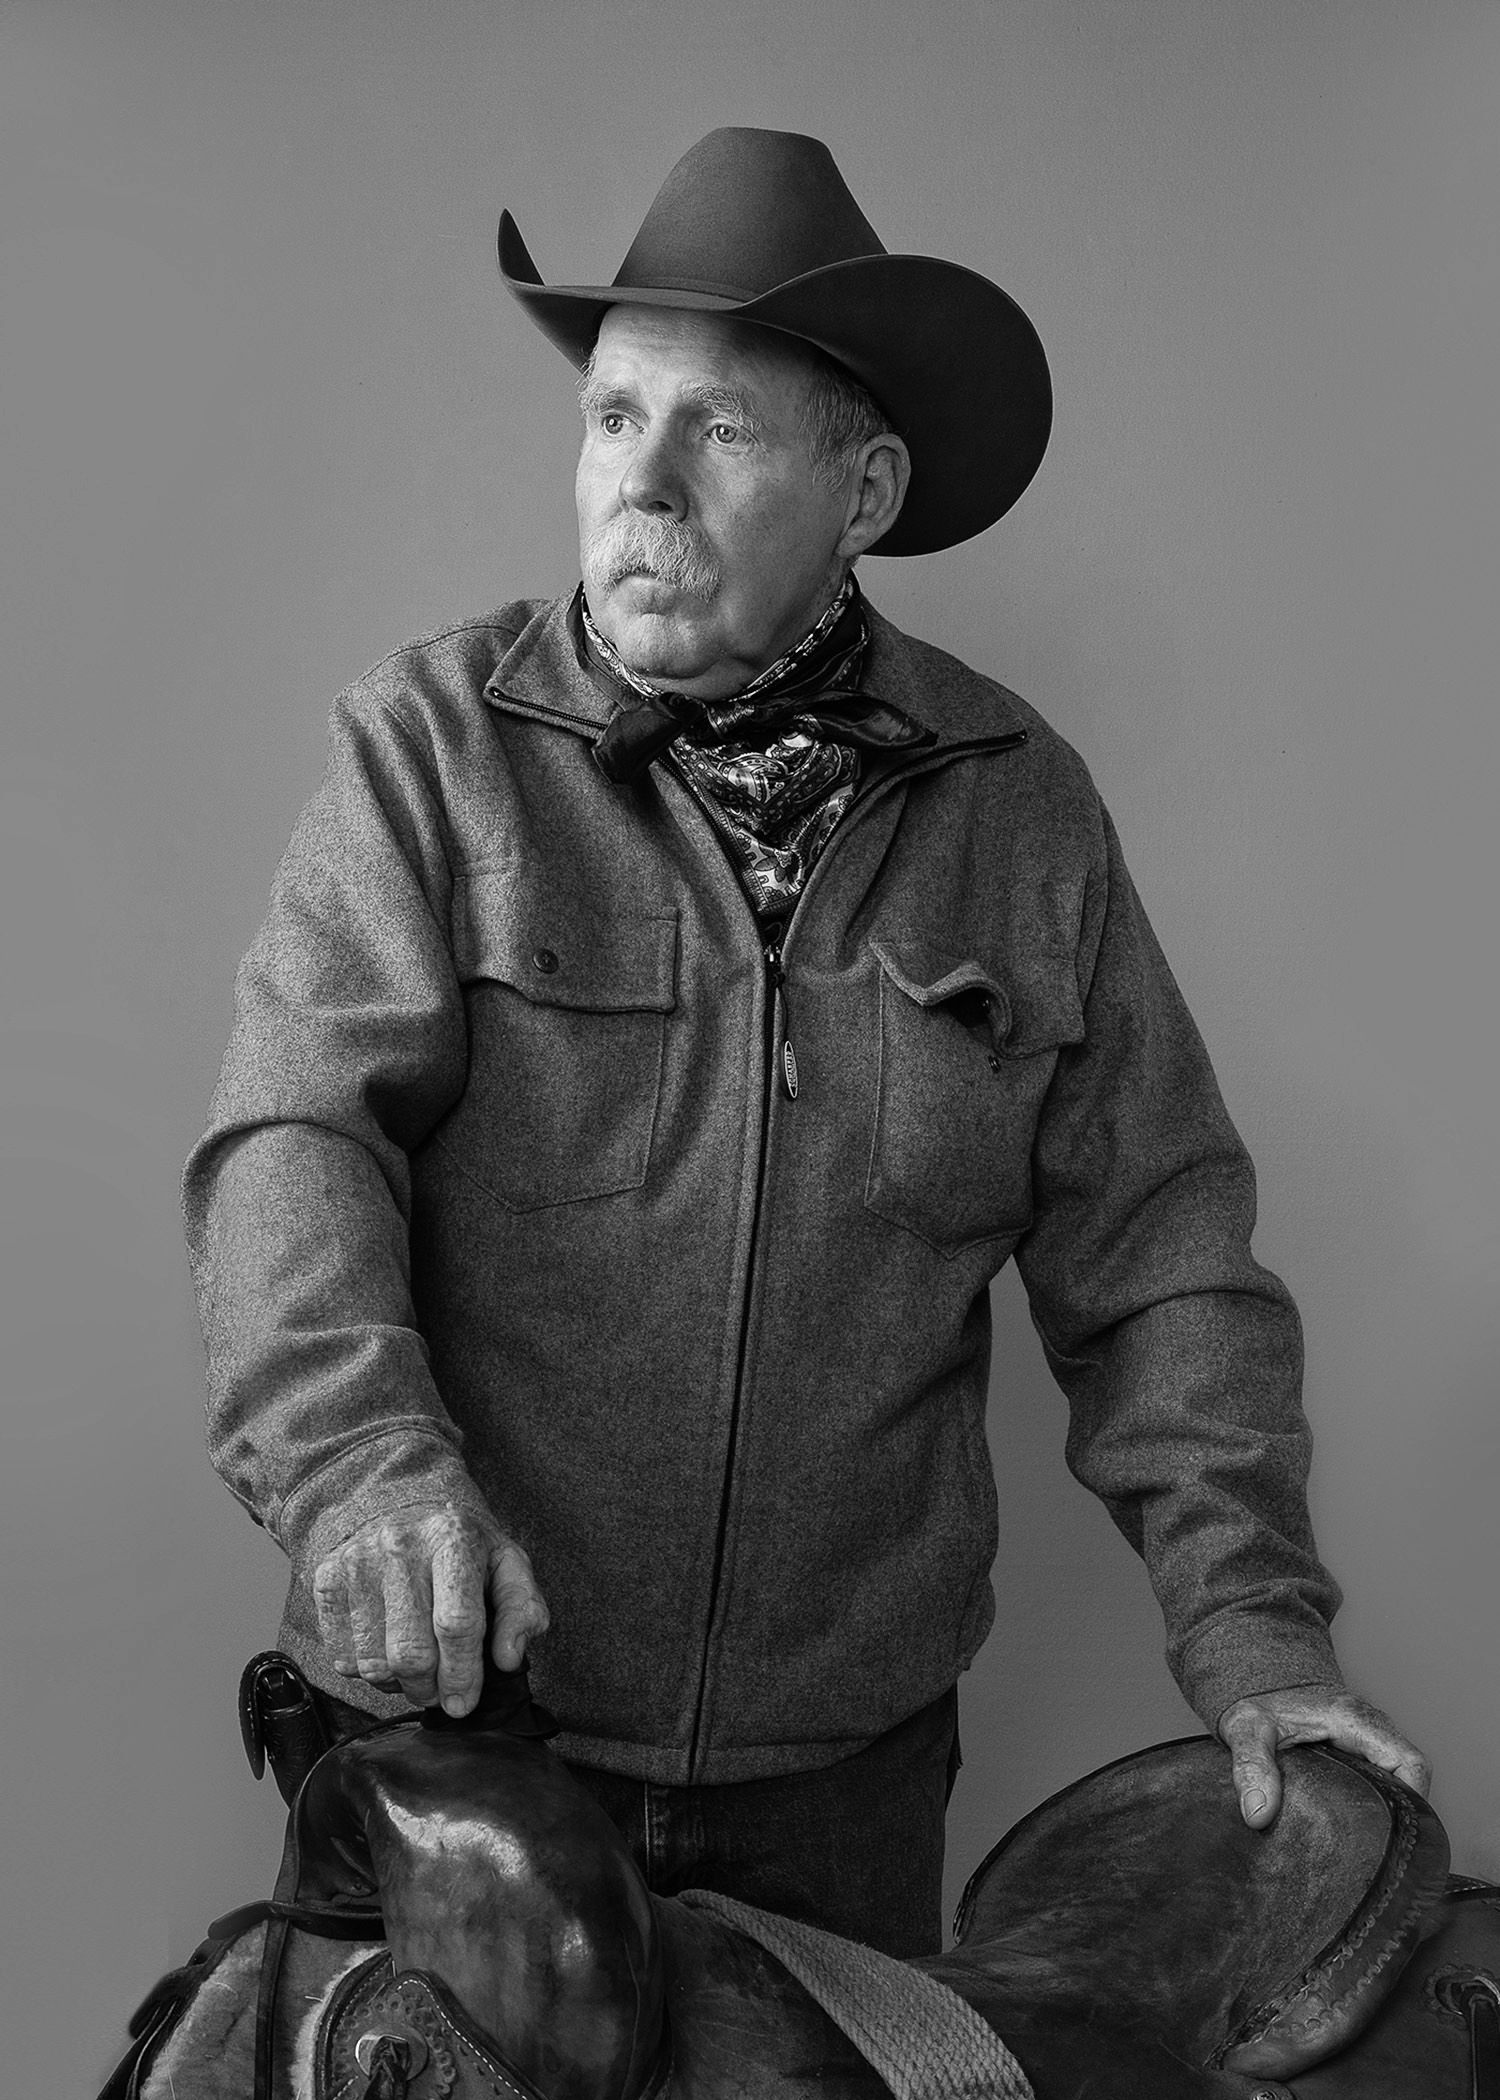 Cowboy with saddle in studio